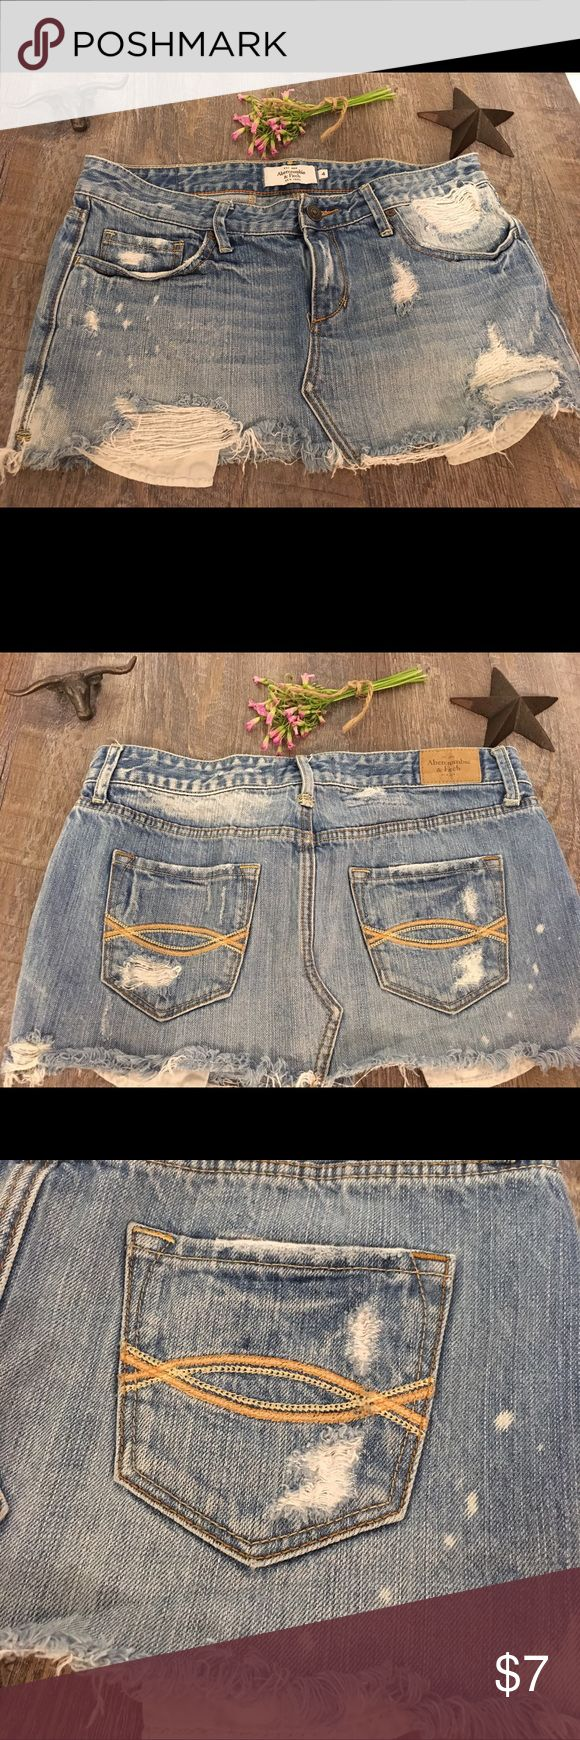 Distressed Jean skirt White washed distrust Abercrombie jeans skirt Abercrombie & Fitch Skirts Mini